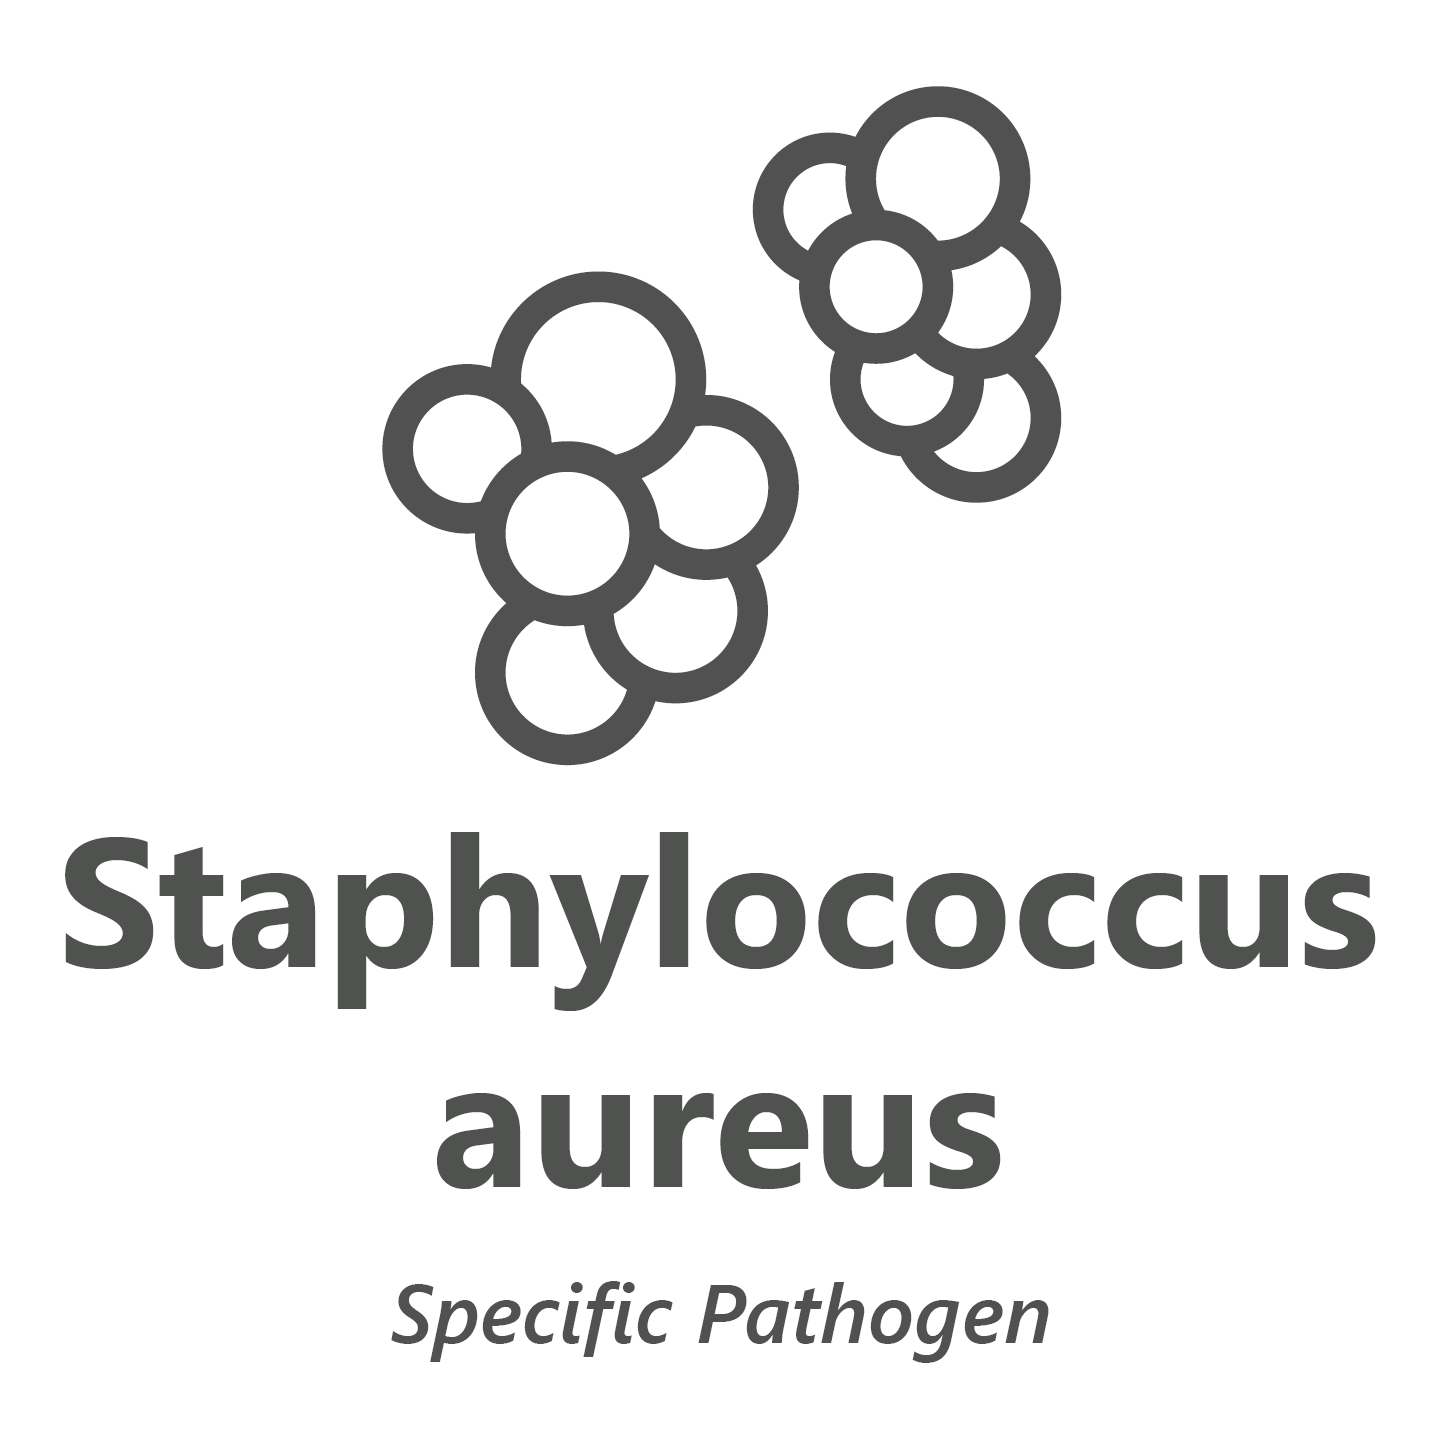 Web store icon for Staphylococcus aureus microbiology test.